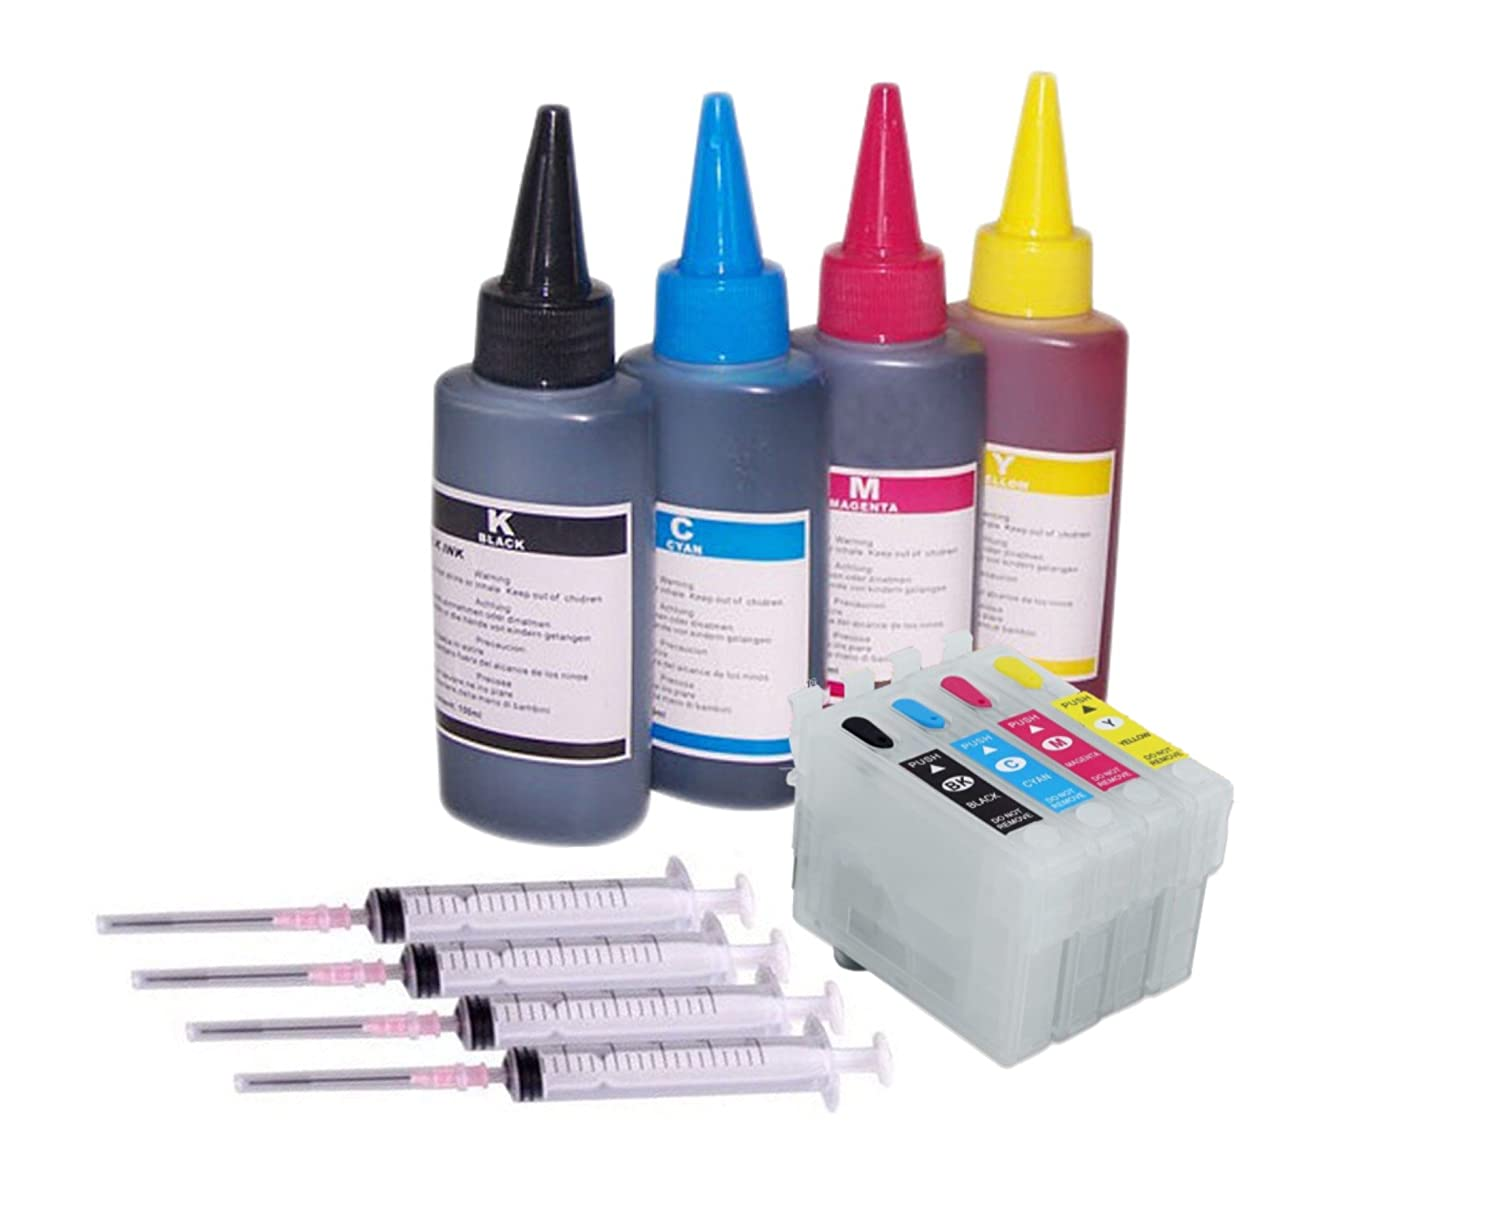 ***FREE POST**** 1 Full refill kit set of High Empty Refillable Quality Non Oem Ink Cartridges Auto reset level for Epson Expression Home XP-245 XP-247 XP-342 XP-442 XP-235, XP-332, XP-335, XP345, XP-432, XP-435 Printers to replace 29xl Strawberry Seris I